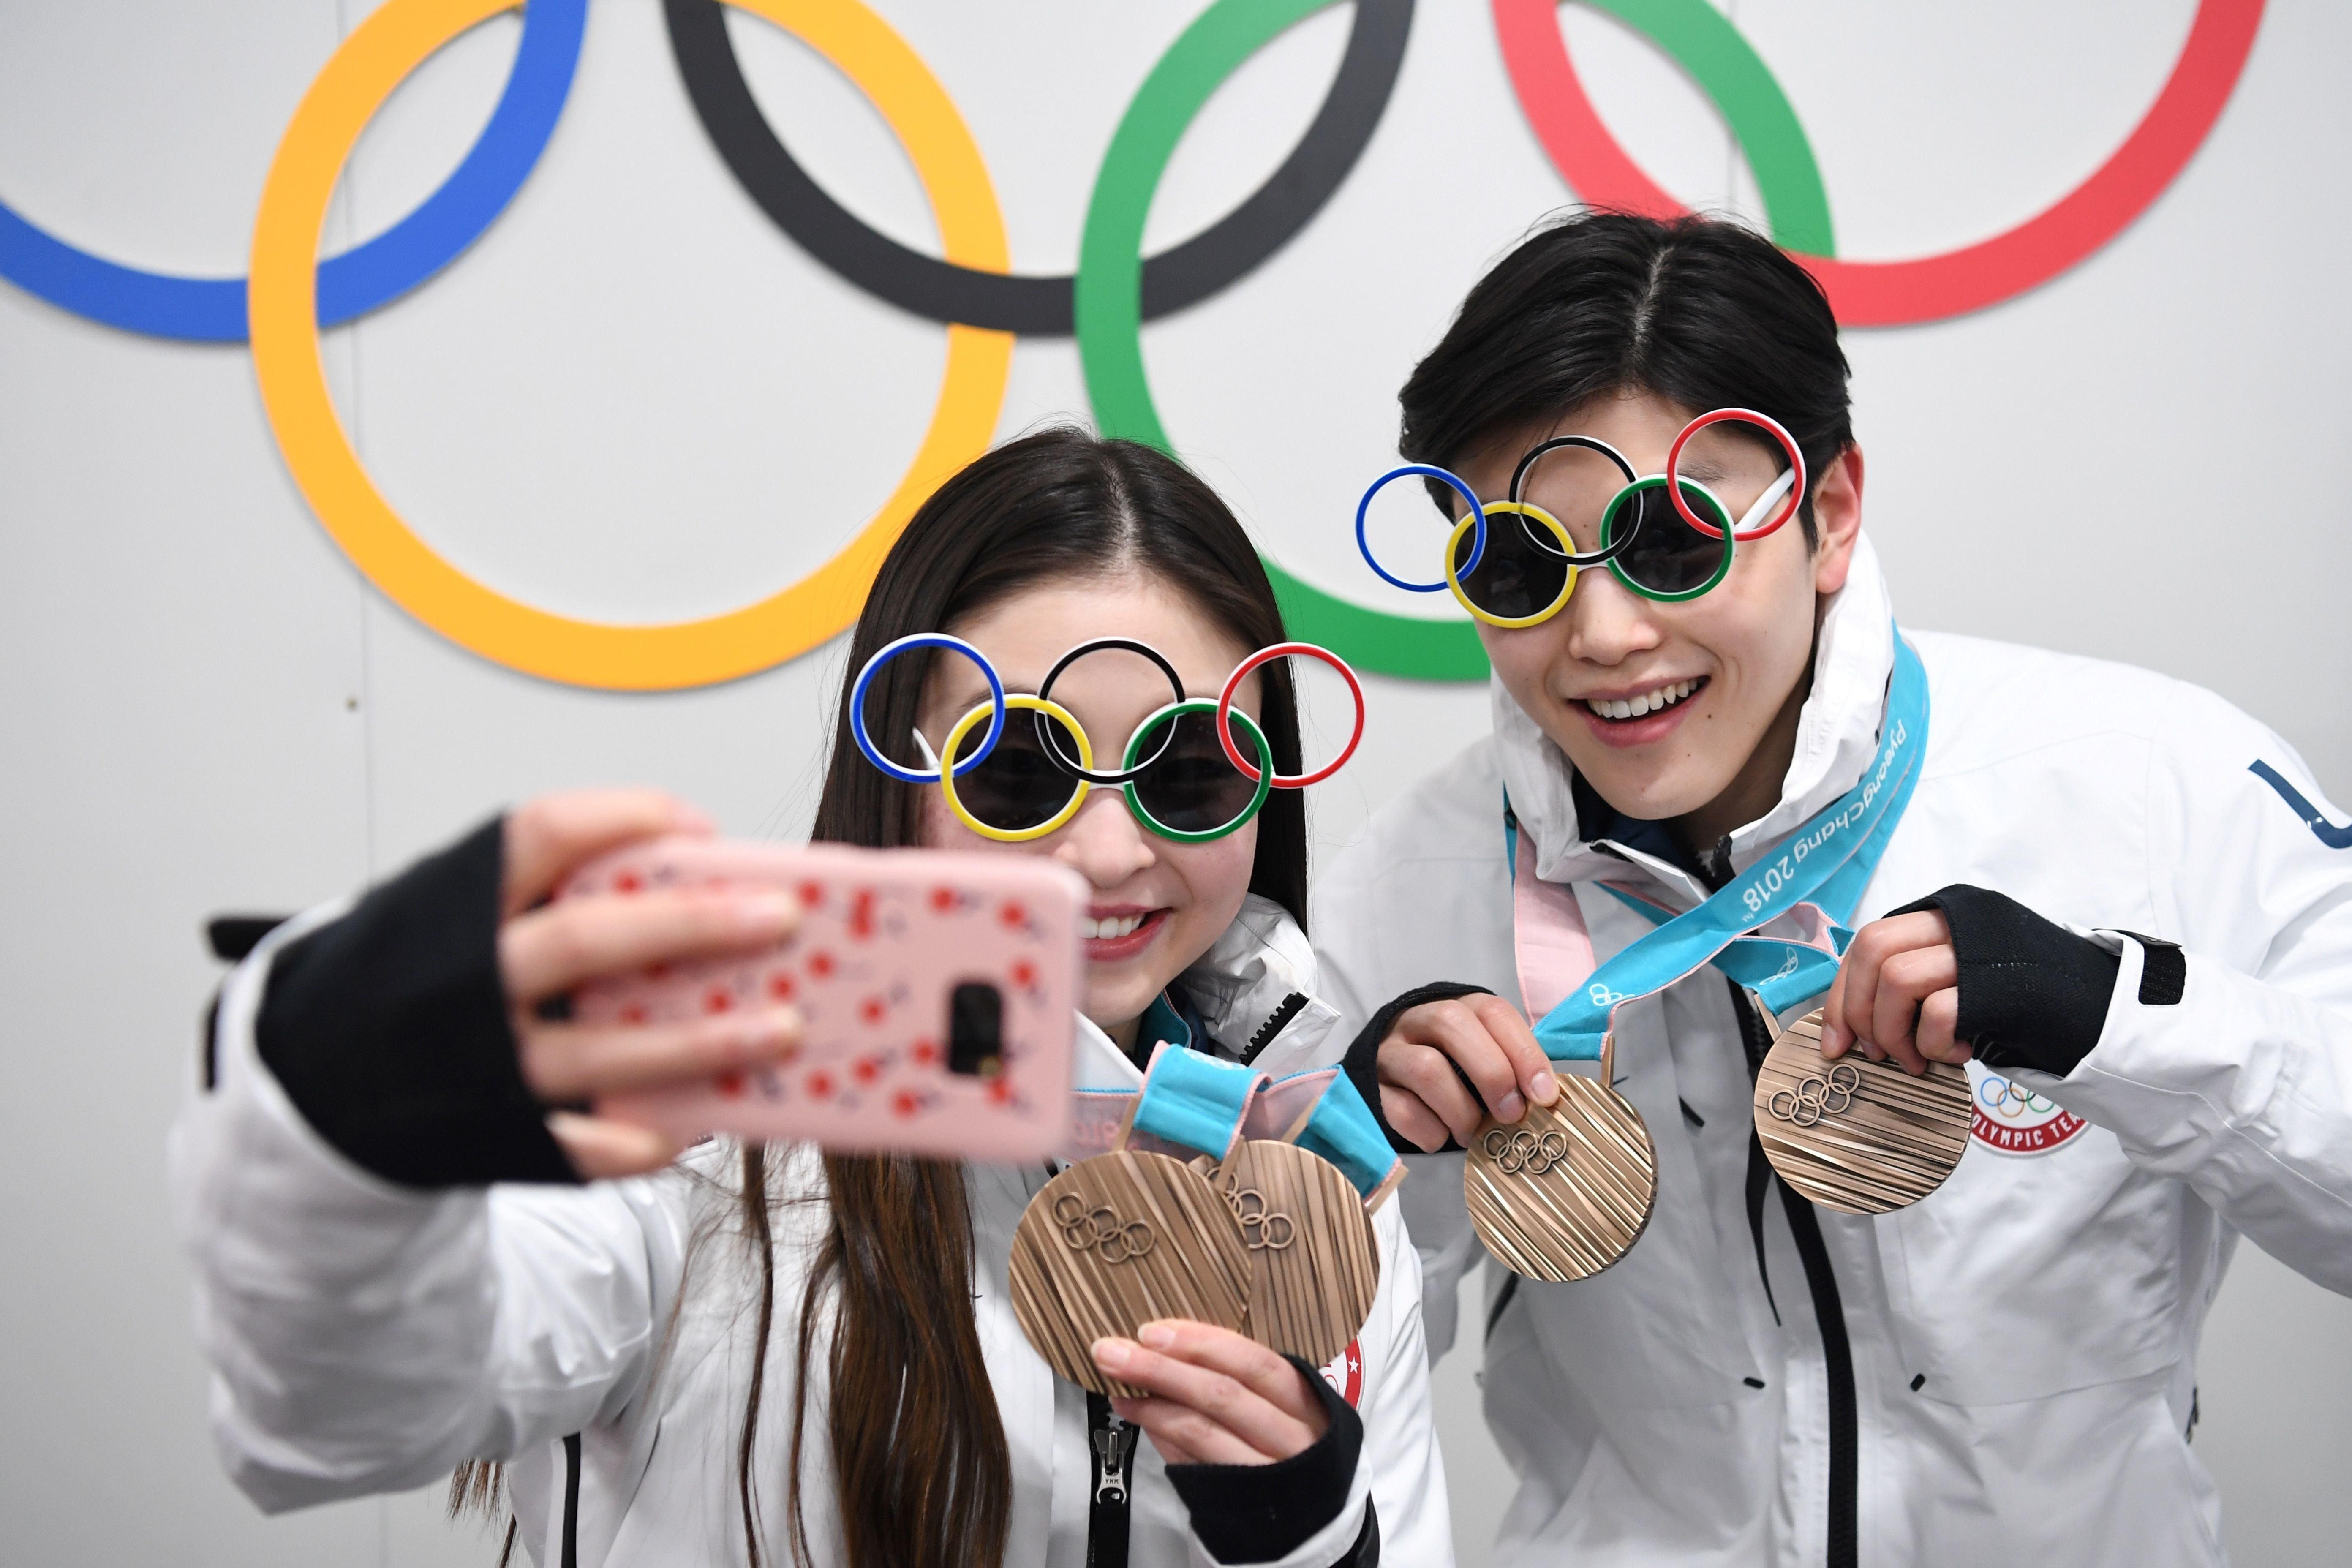 USA's figure skating bronze medallists Maia Shibutani and Alex Shibutani pose for a selfie in front of Olympic rings backstage at the Athletes' Lounge during the medal ceremonies at the Pyeongchang Medals Plaza during the Pyeongchang 2018 Winter Olympic Games in Pyeongchang on February 20, 2018. / AFP PHOTO / Dimitar DILKOFF        (Photo credit should read DIMITAR DILKOFF/AFP/Getty Images)